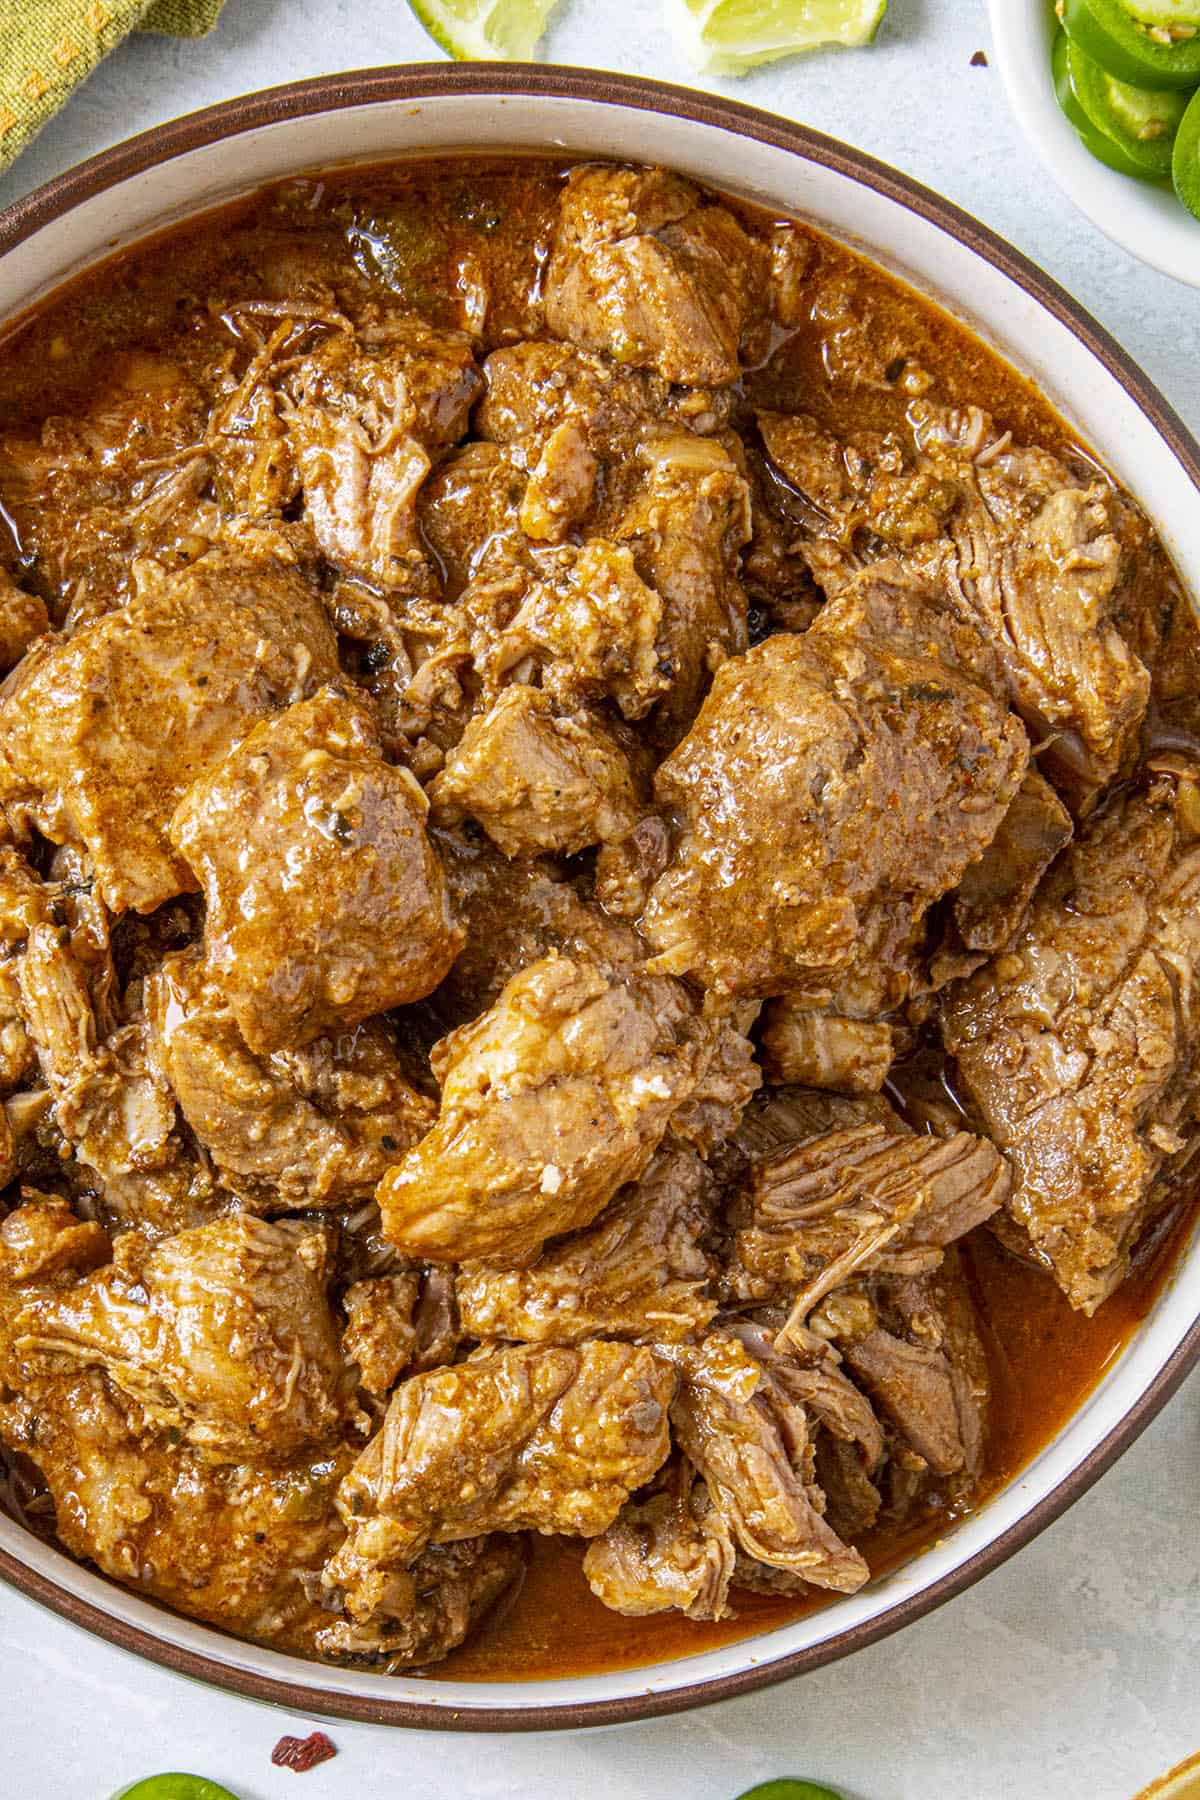 Meaty Chunks of Carne Adovada in a bowl, ready to enjoy